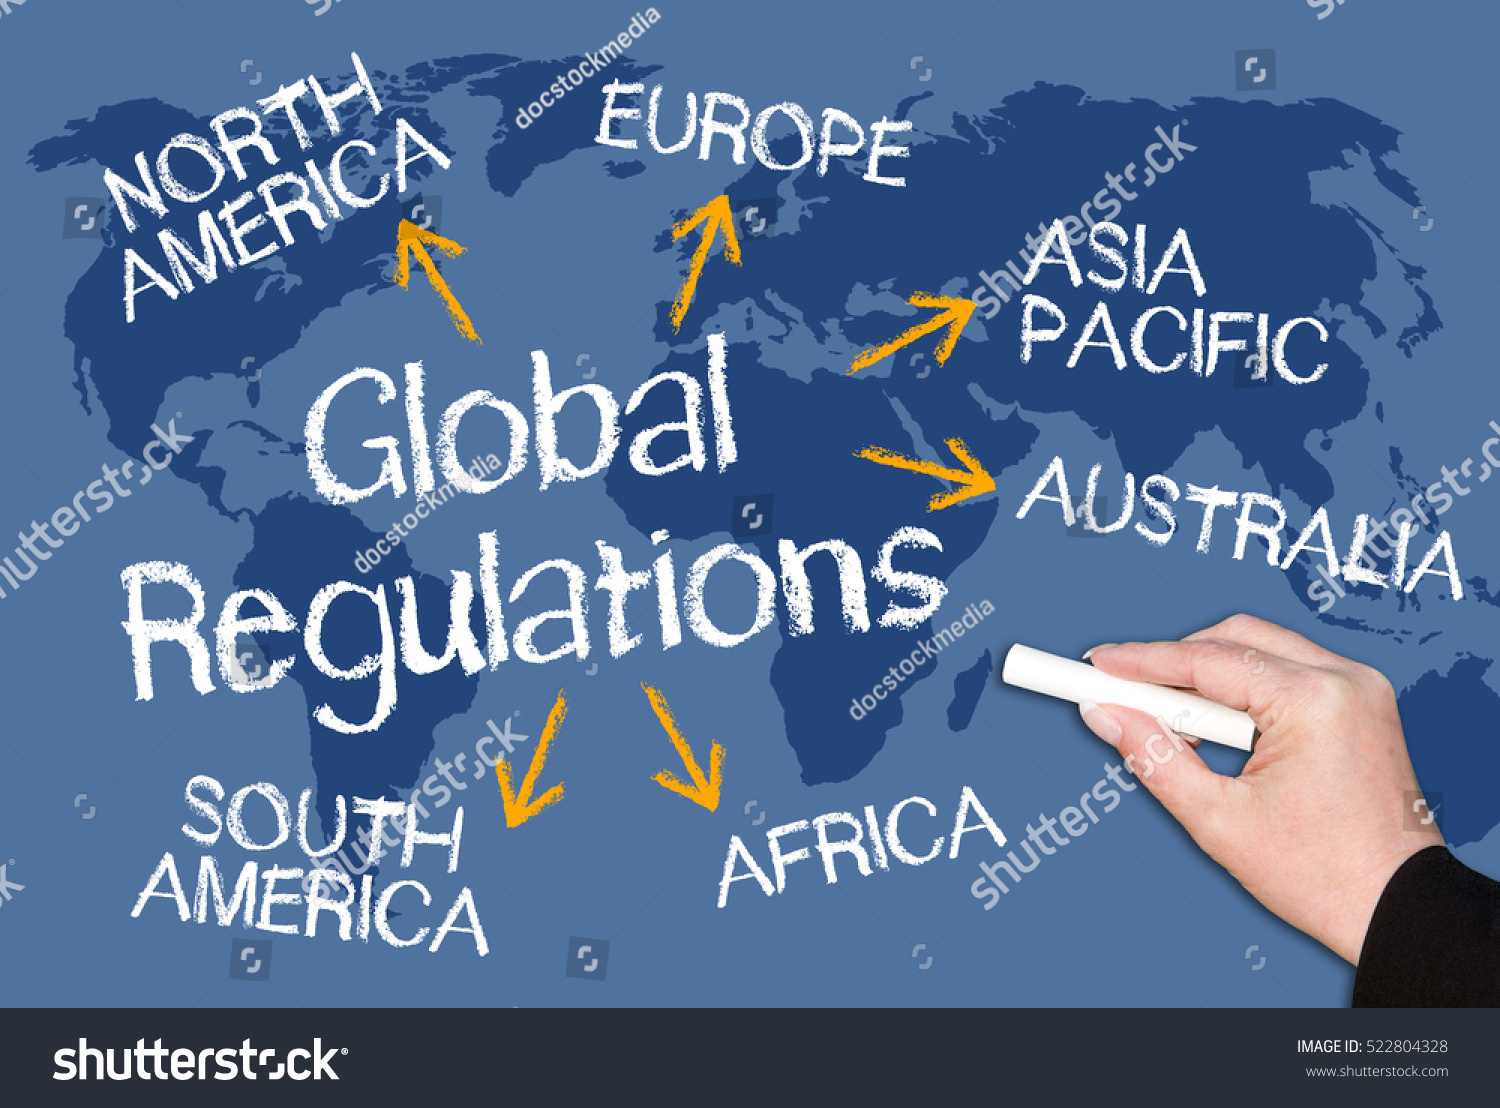 global regulations and globalization Competing perspectives on globalization and regulatory competition as  globalization became  global business regulation (2000: 508-9) for the  purpose of.